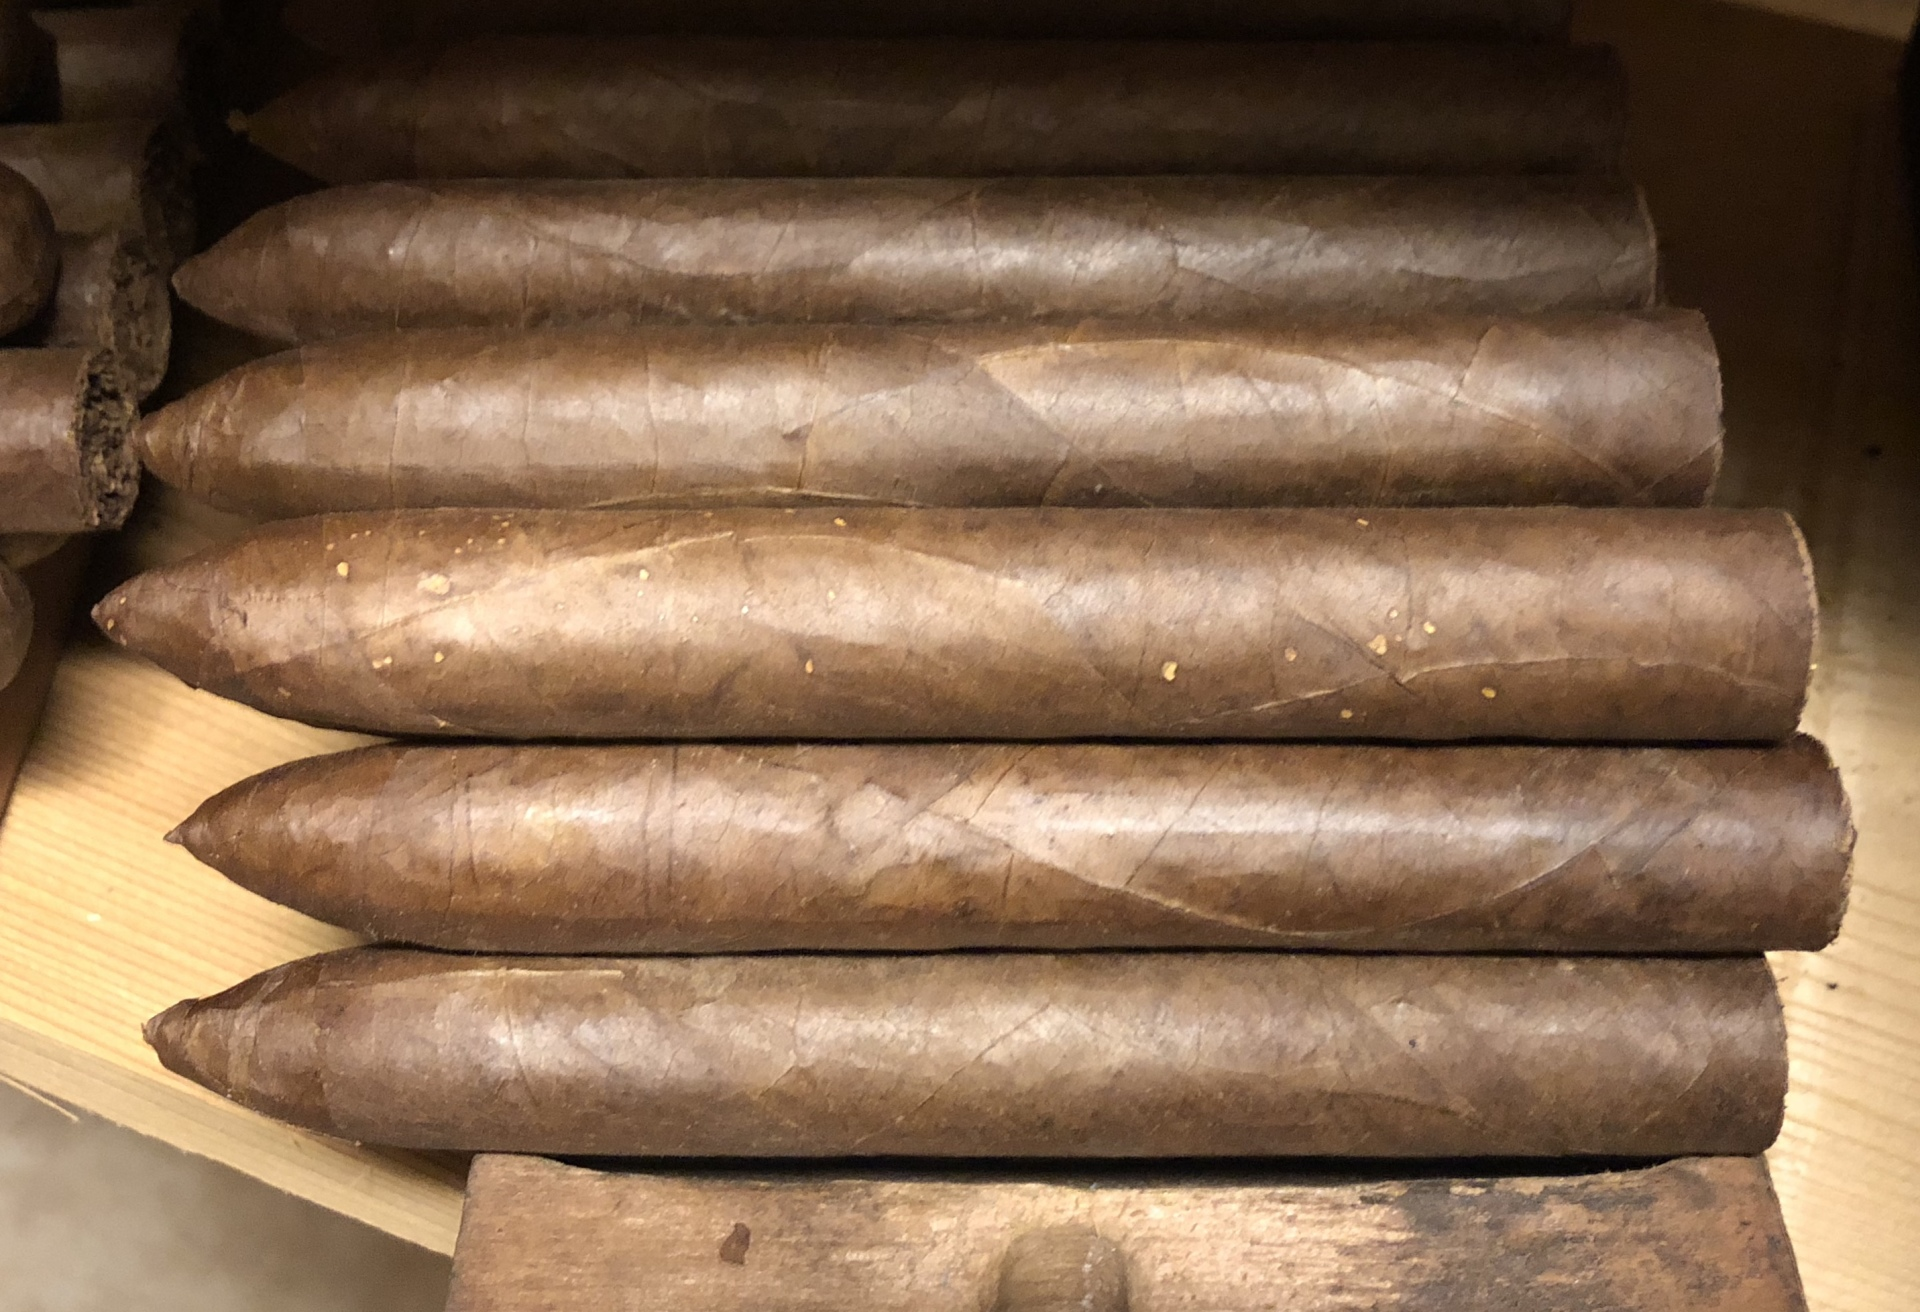 """Eric's Own"" Premium Cigars: Hand rolled with premium, long-filler tobacco"